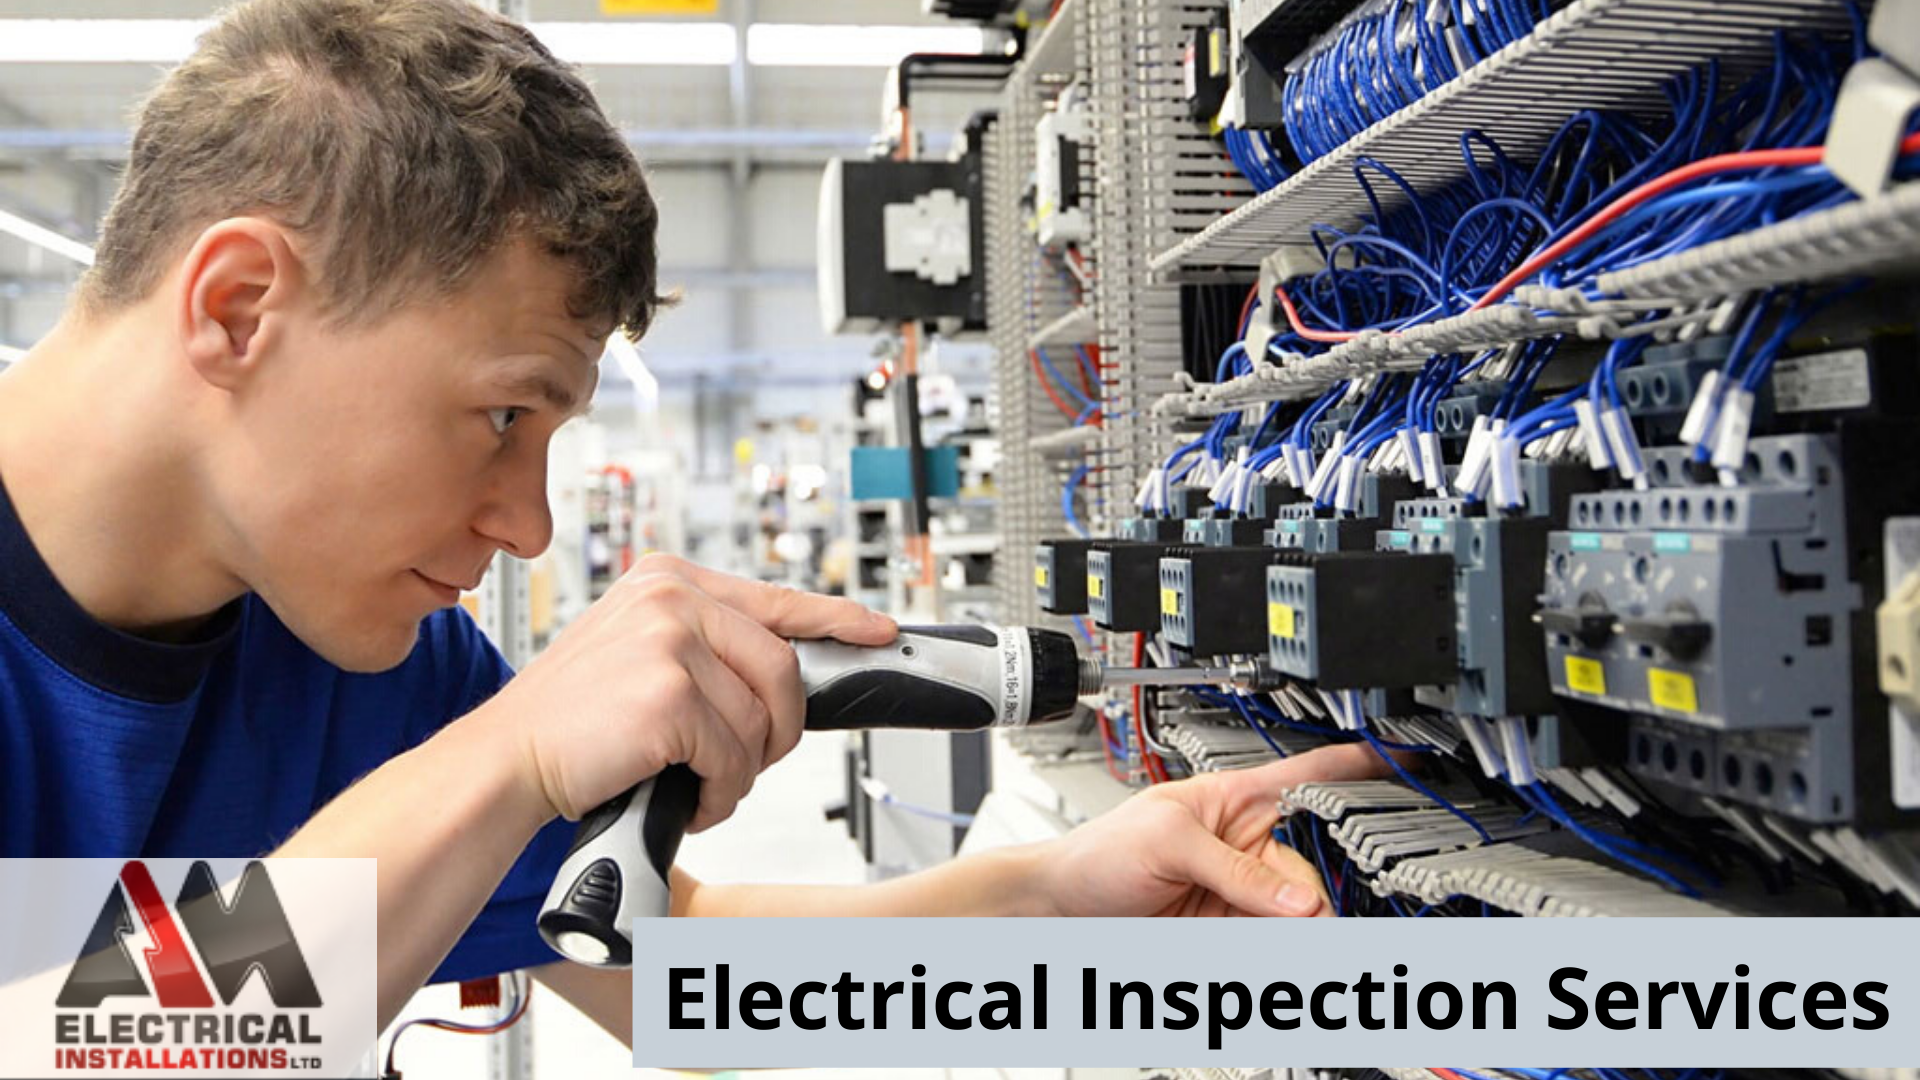 AM Electricals renders one of the most reliable electrical